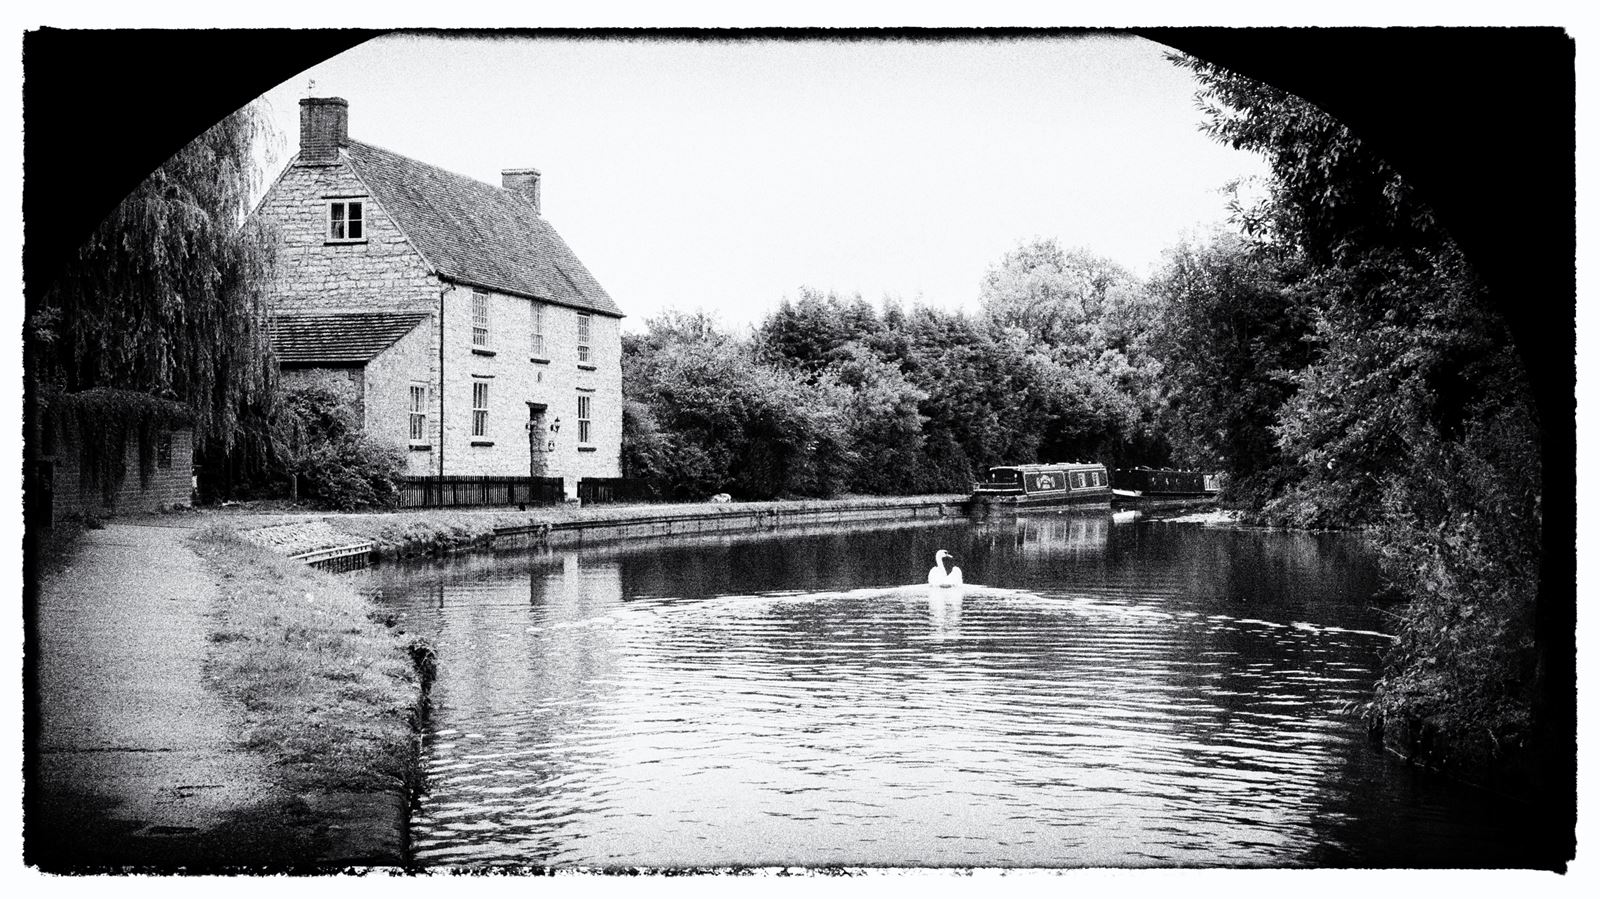 The Grand Union at Linford Manor Park near Milton Keynes. This was the junction of the now filled in Newport Pagnell Canal.